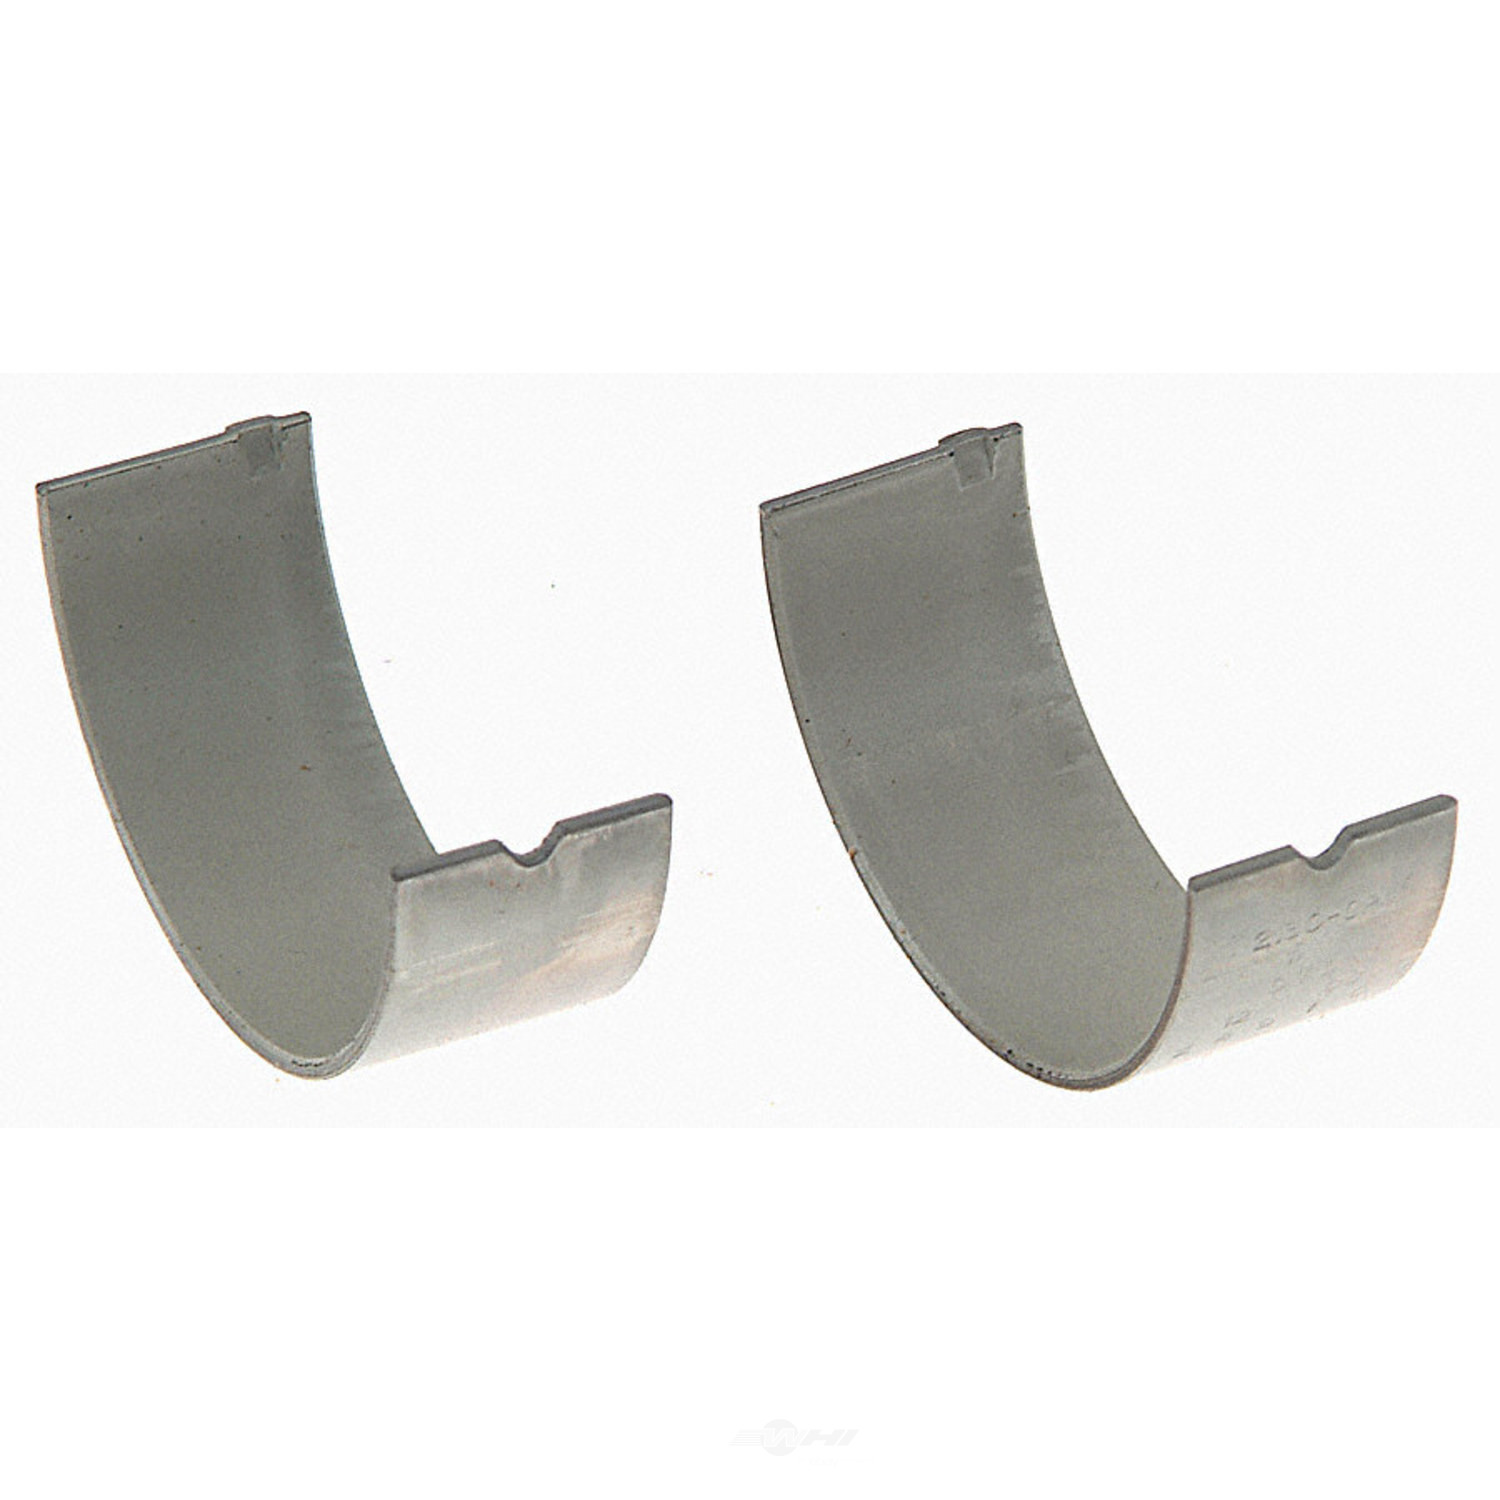 SEALED POWER - Engine Connecting Rod Bearing - SEA 2130CP 30